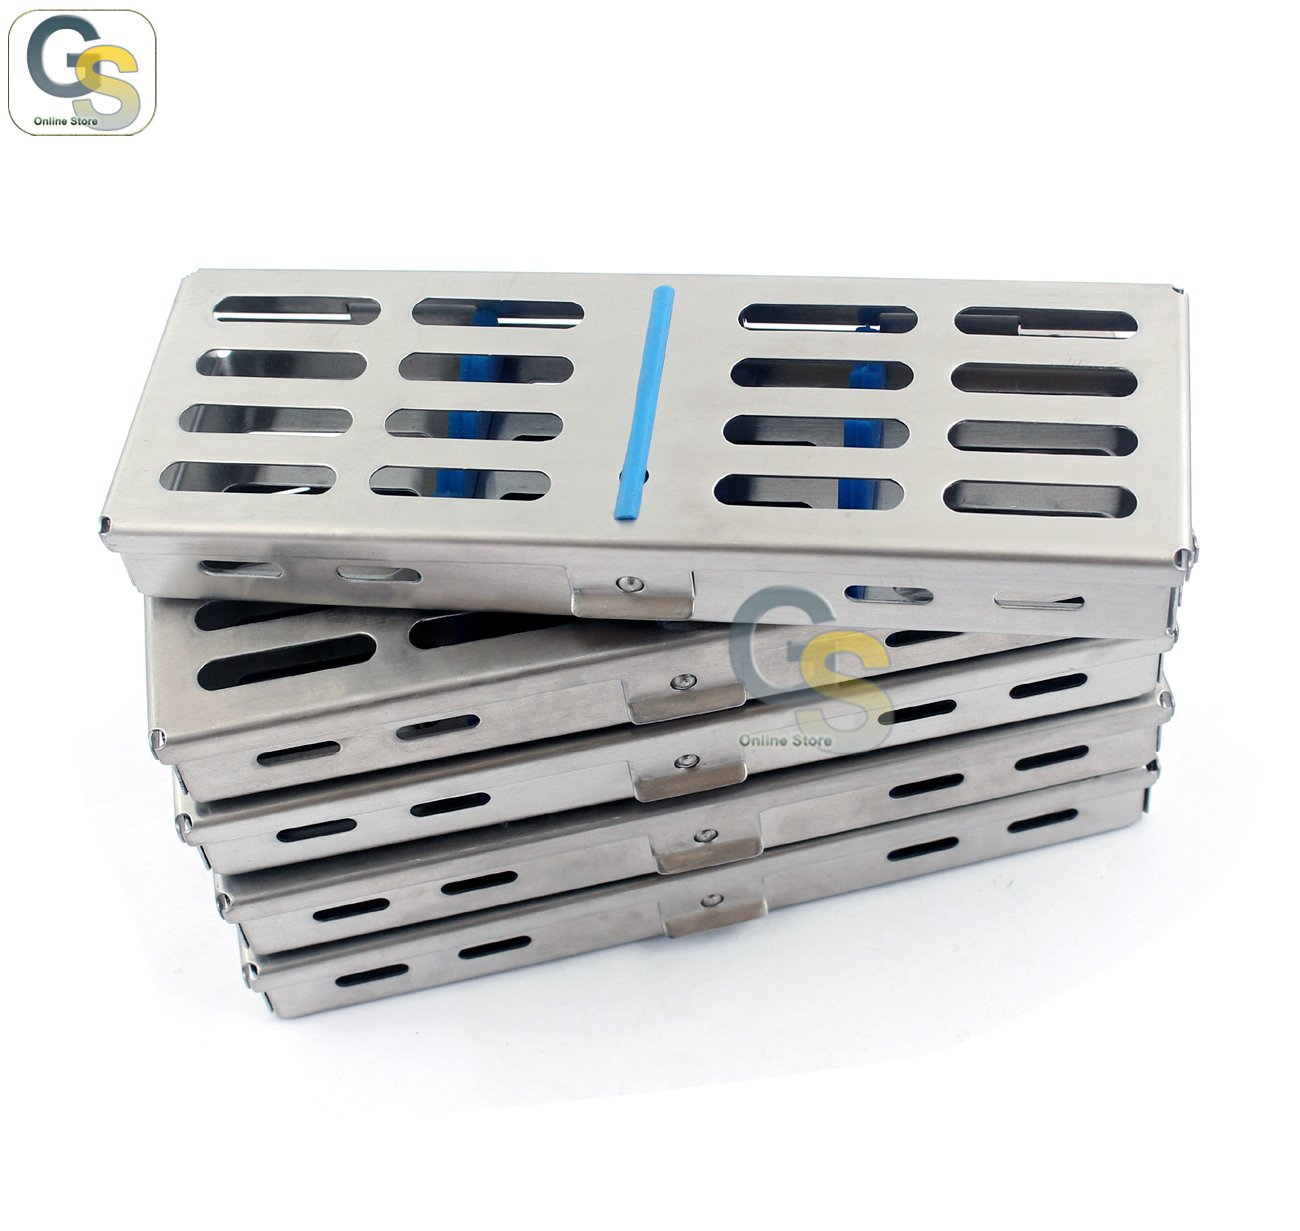 G.S SET OF 5 EACH GERMAN GRADE STAINLESS STEEL DENTAL AUTOCLAVE STERILIZATION CASSETTE RACK BOX TRAY FOR 5 INSTRUMENTS BEST QUALITY